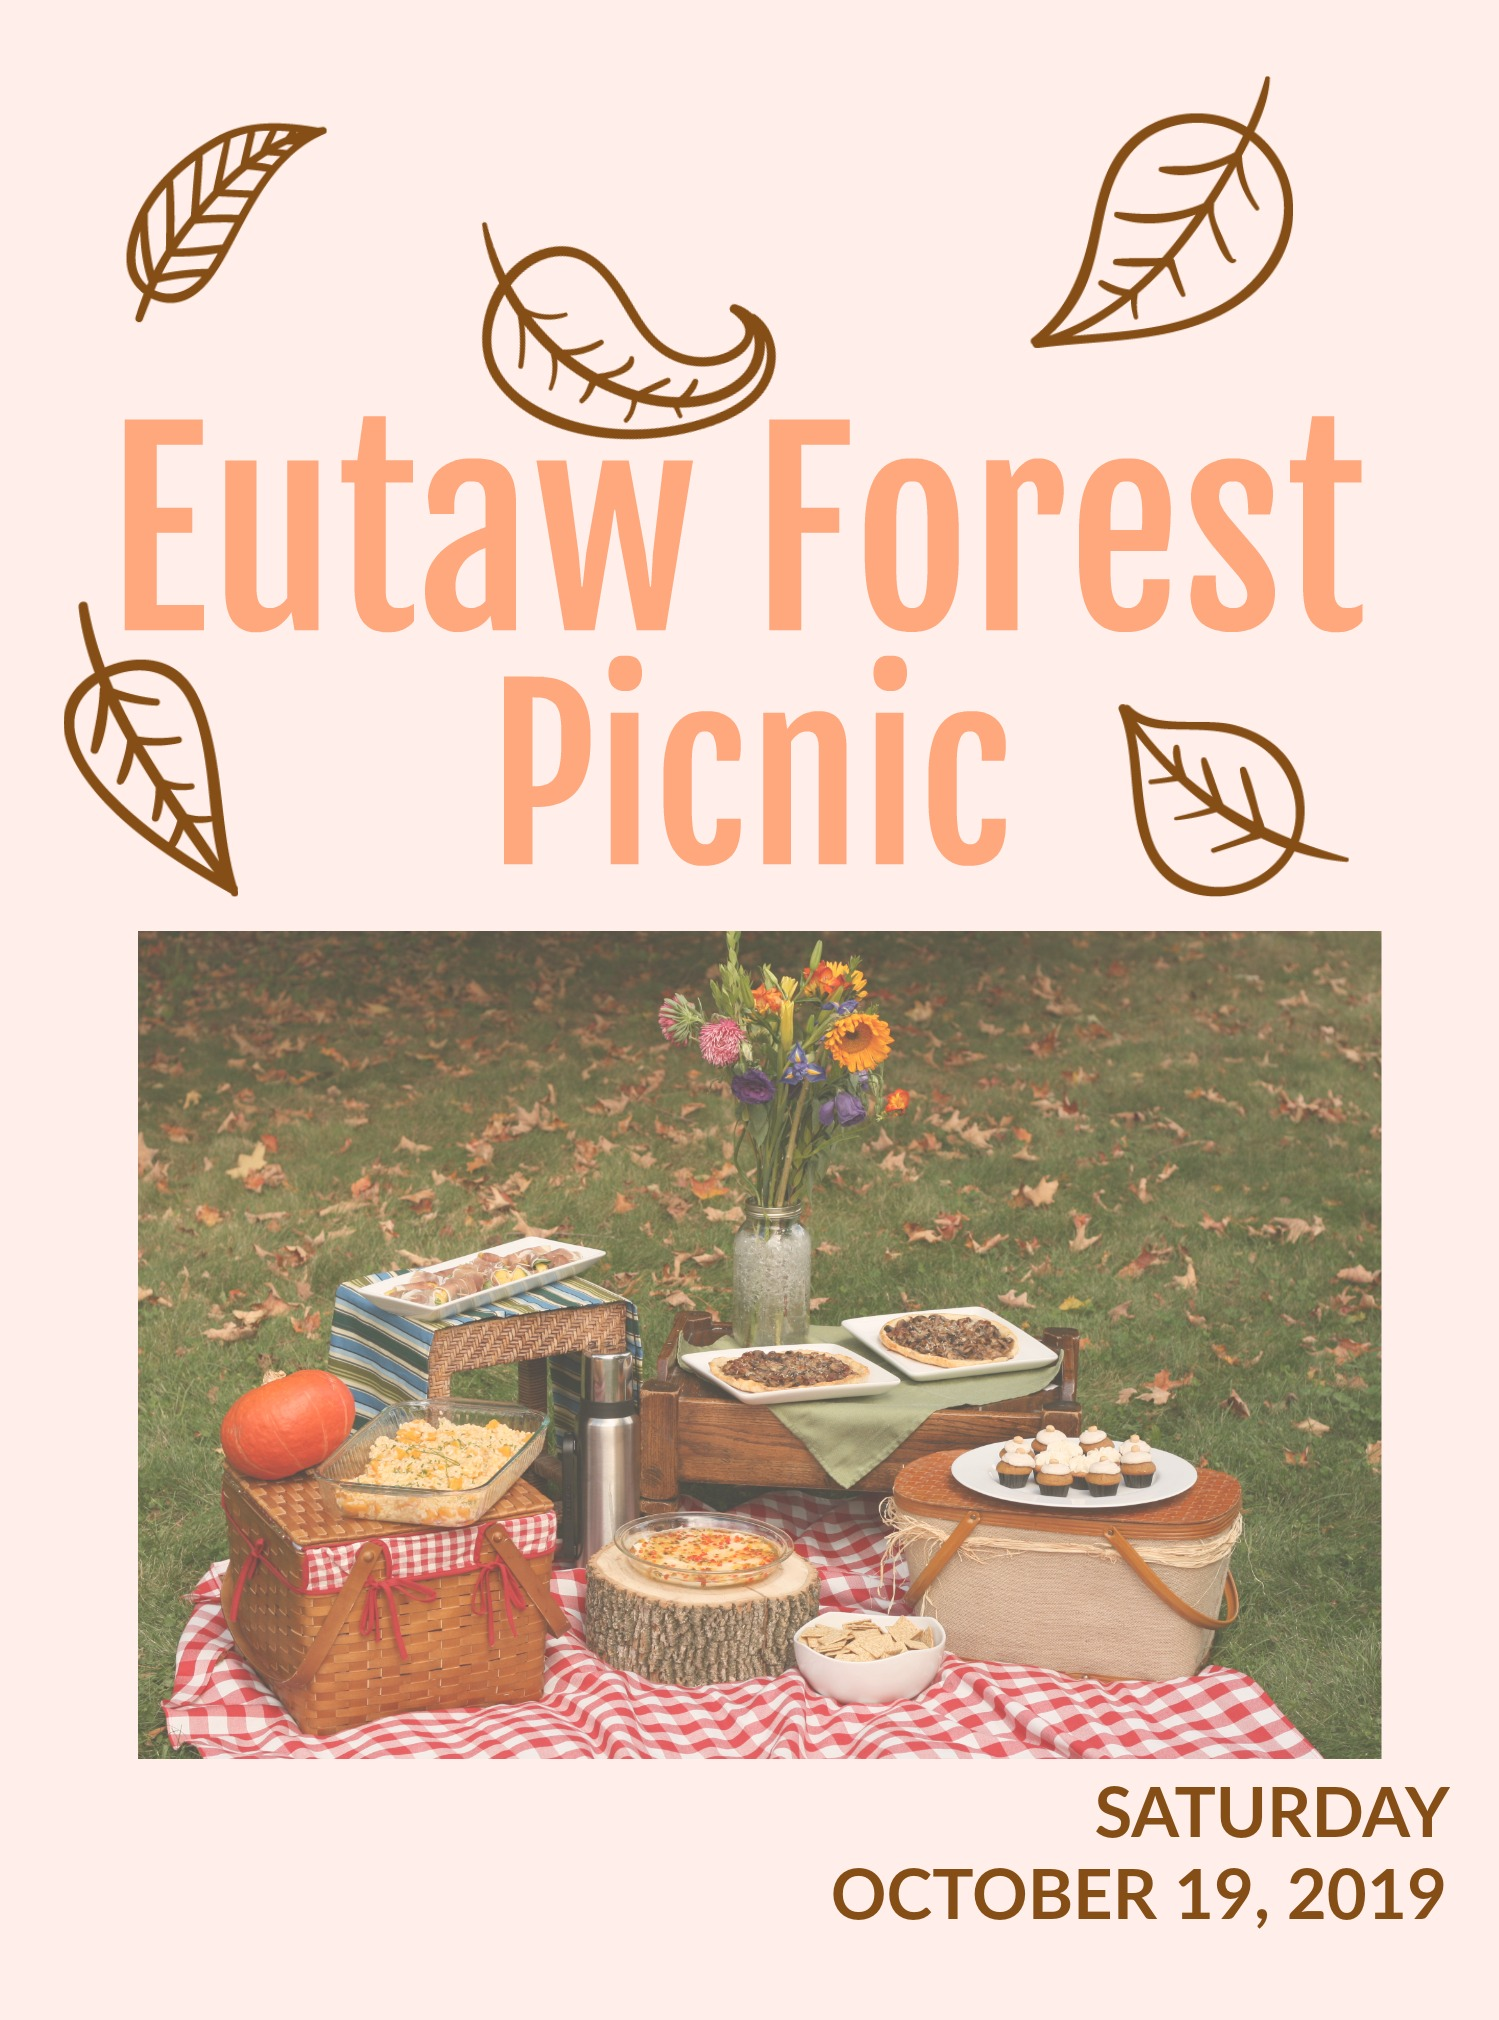 Eutaw Forest picnic